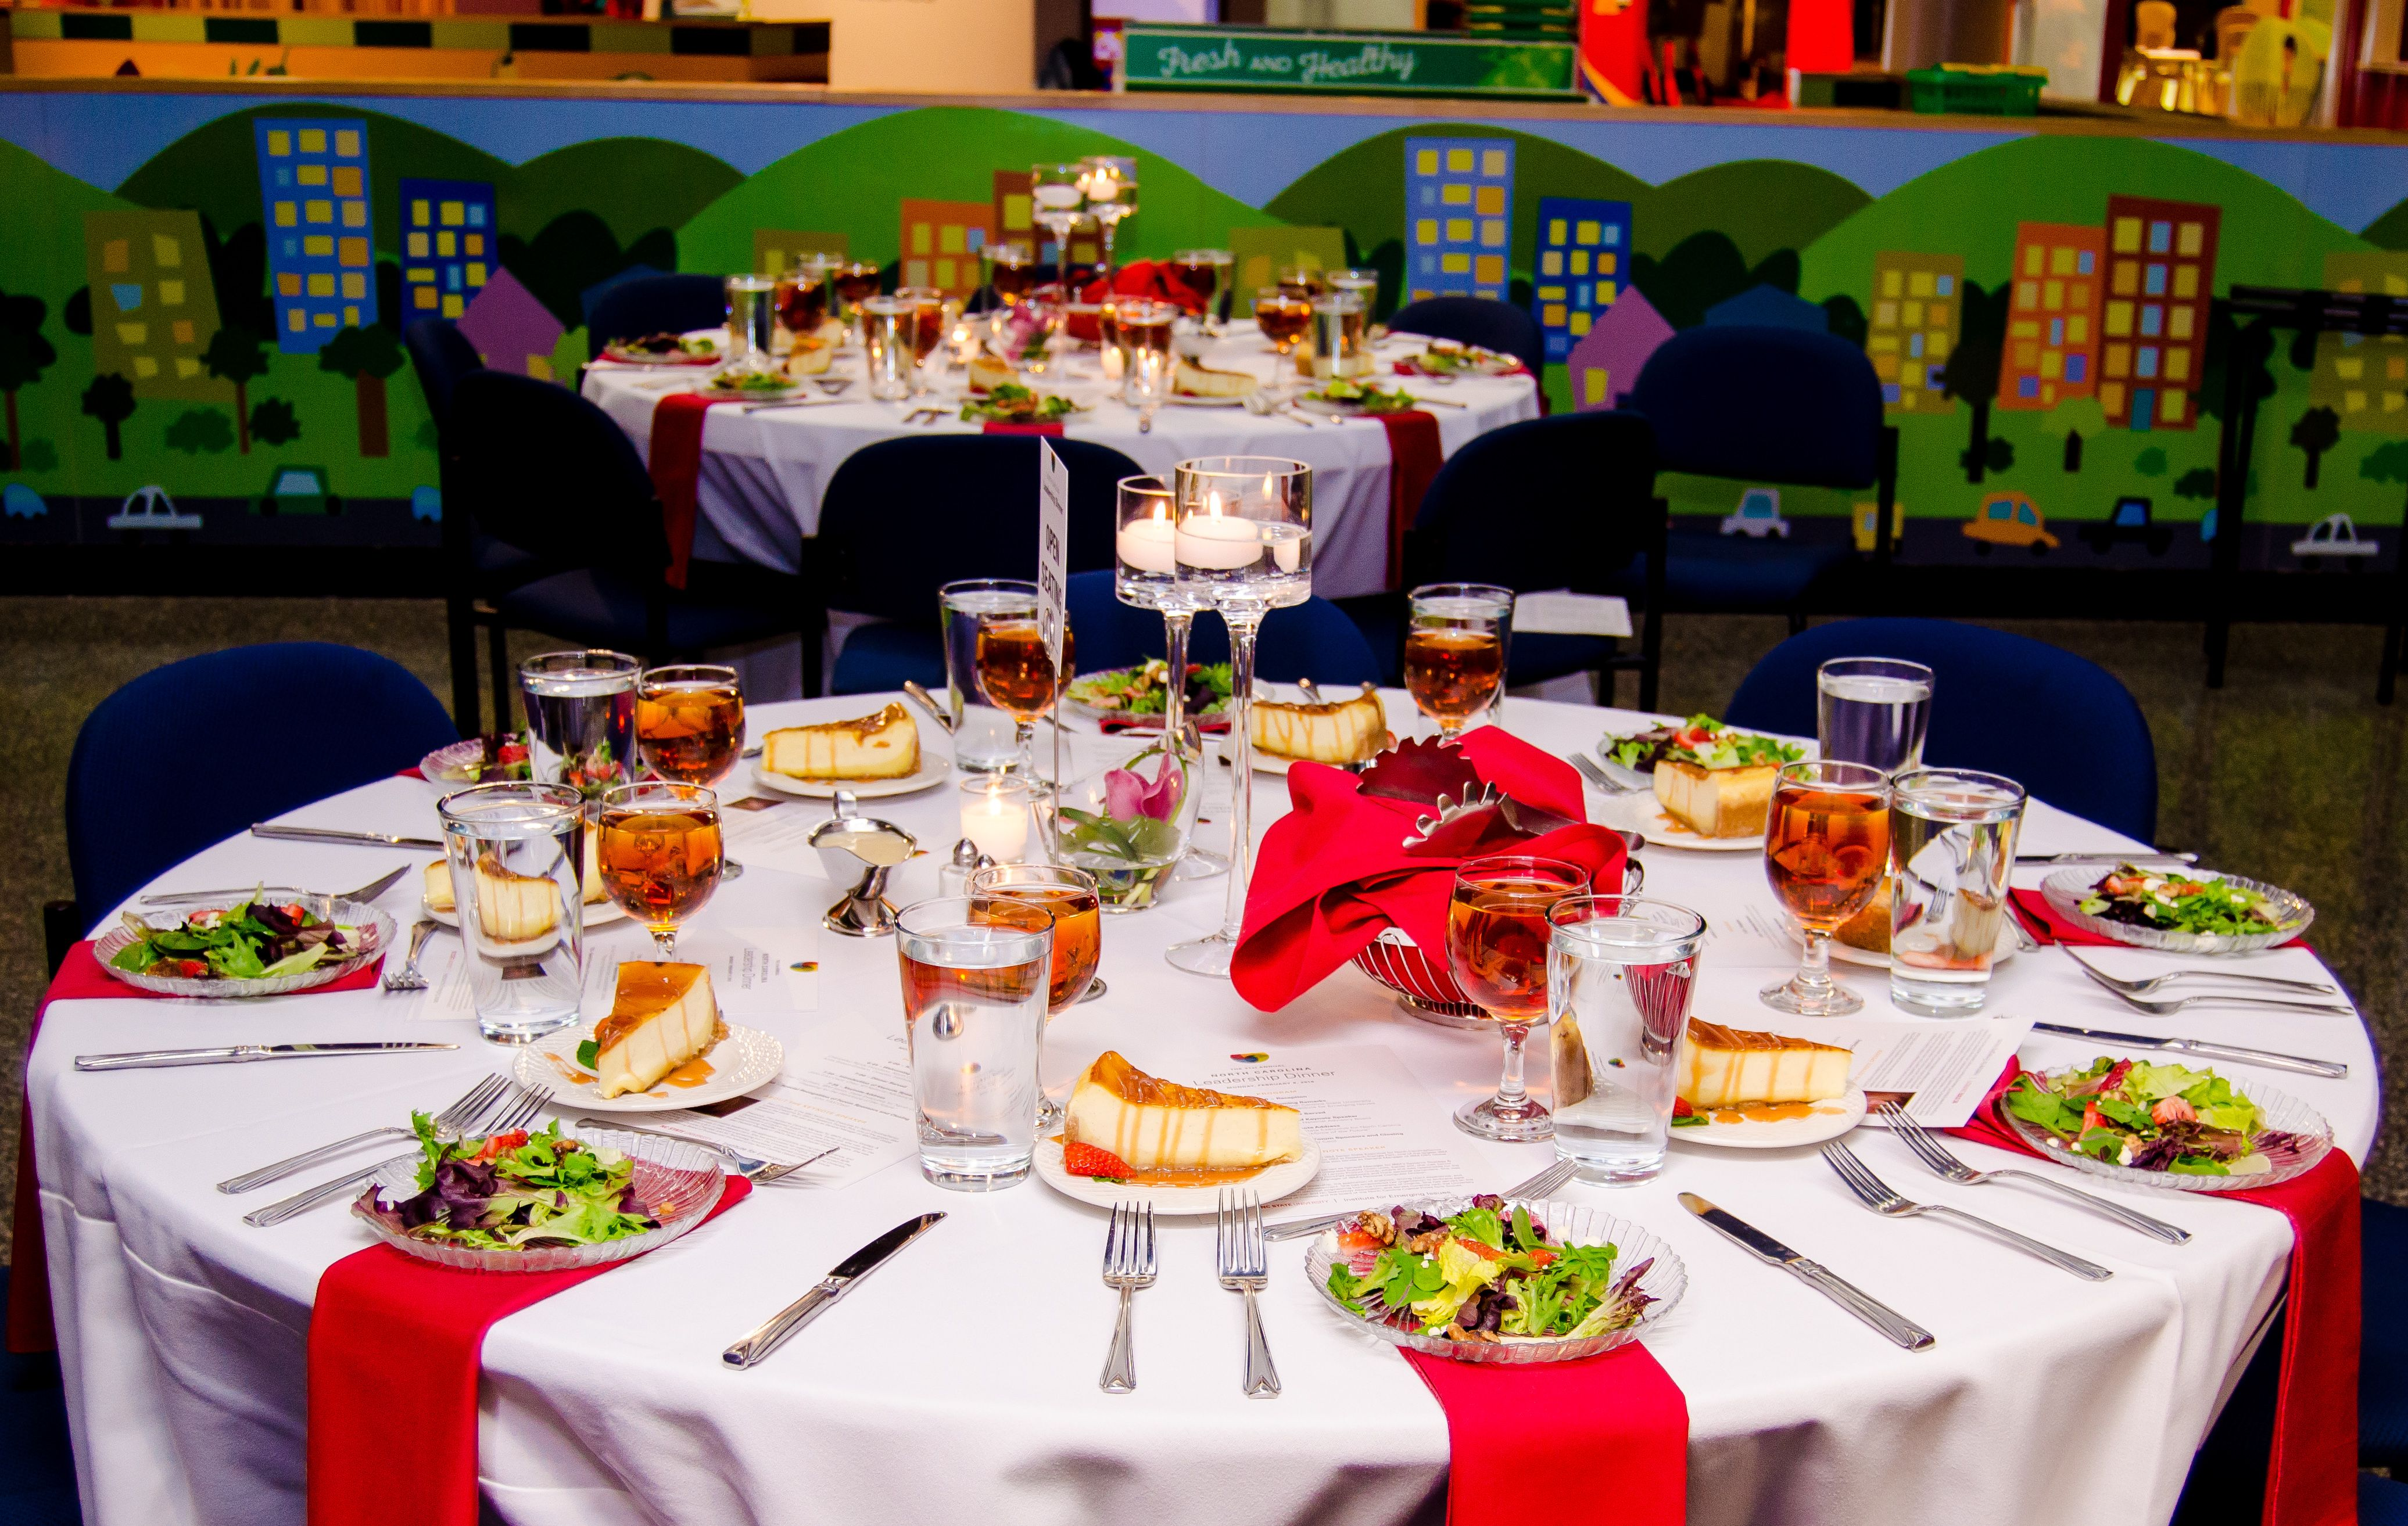 Nc Leadership Dinner At Marbles Raleigh Event Catering Beautiful Preset Tables With Salads And Cheese Cake Event Catering Catering Event